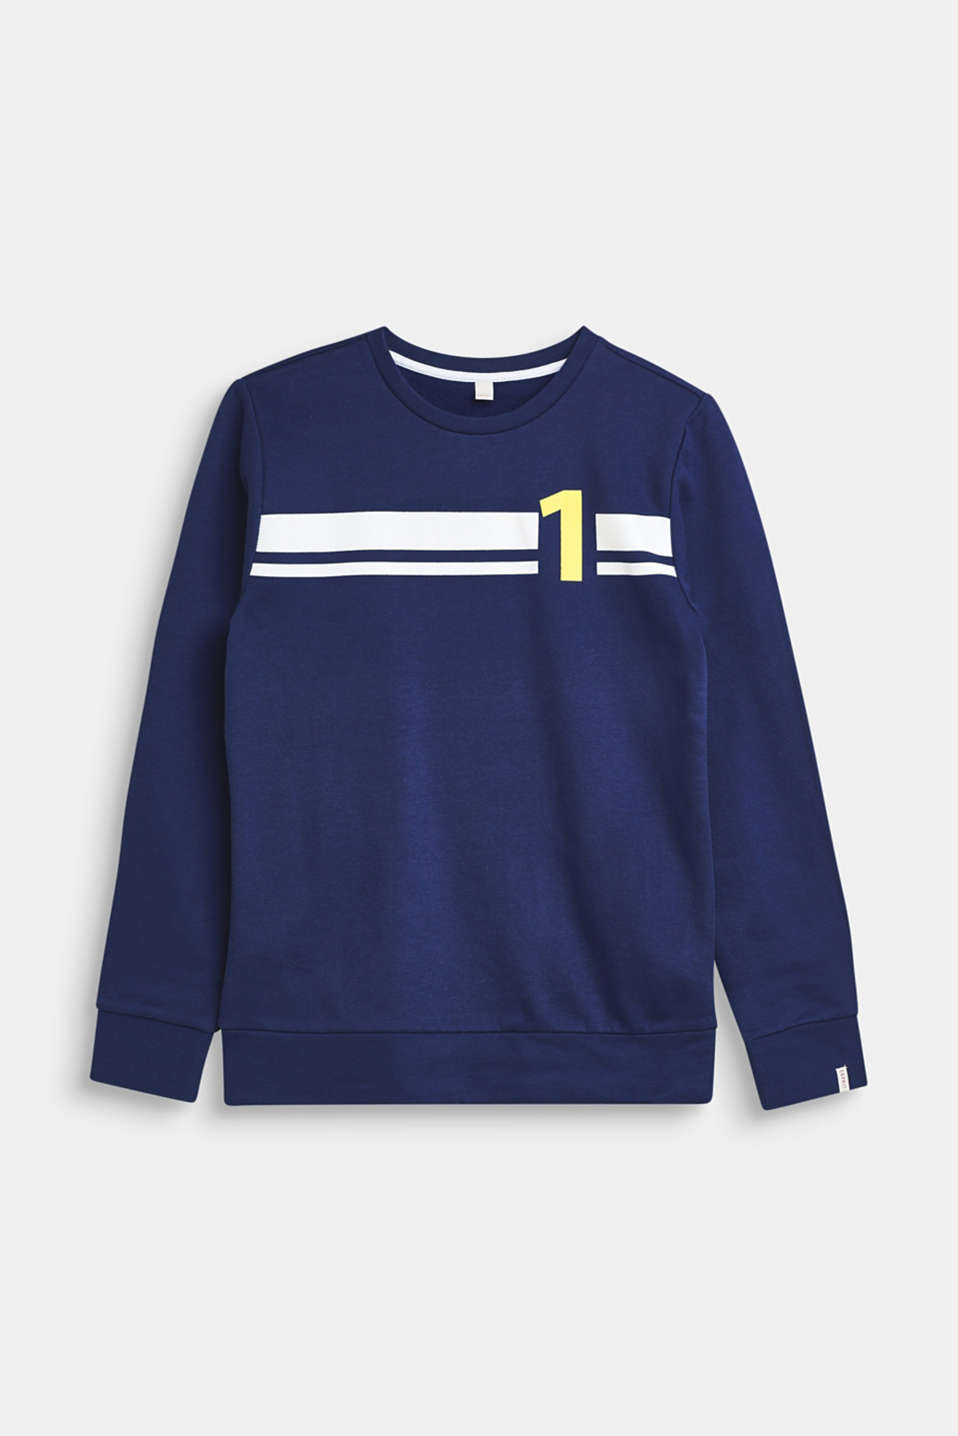 Esprit - Sweatshirt in 100% cotton